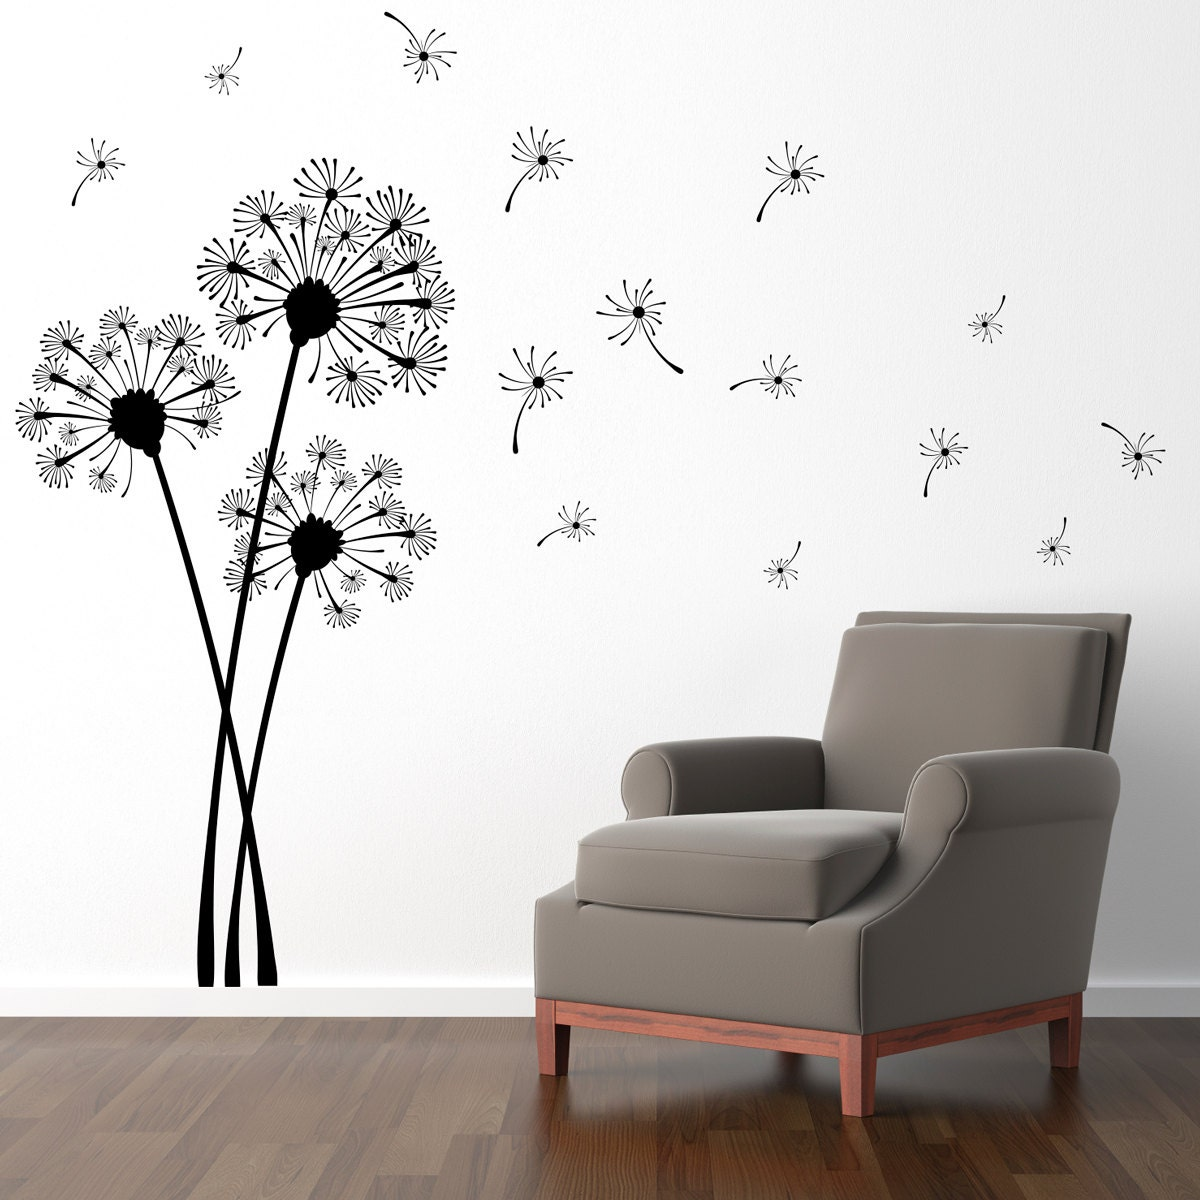 Dandelion Wall Decal Flower Decor Dandelion Wall Sticker